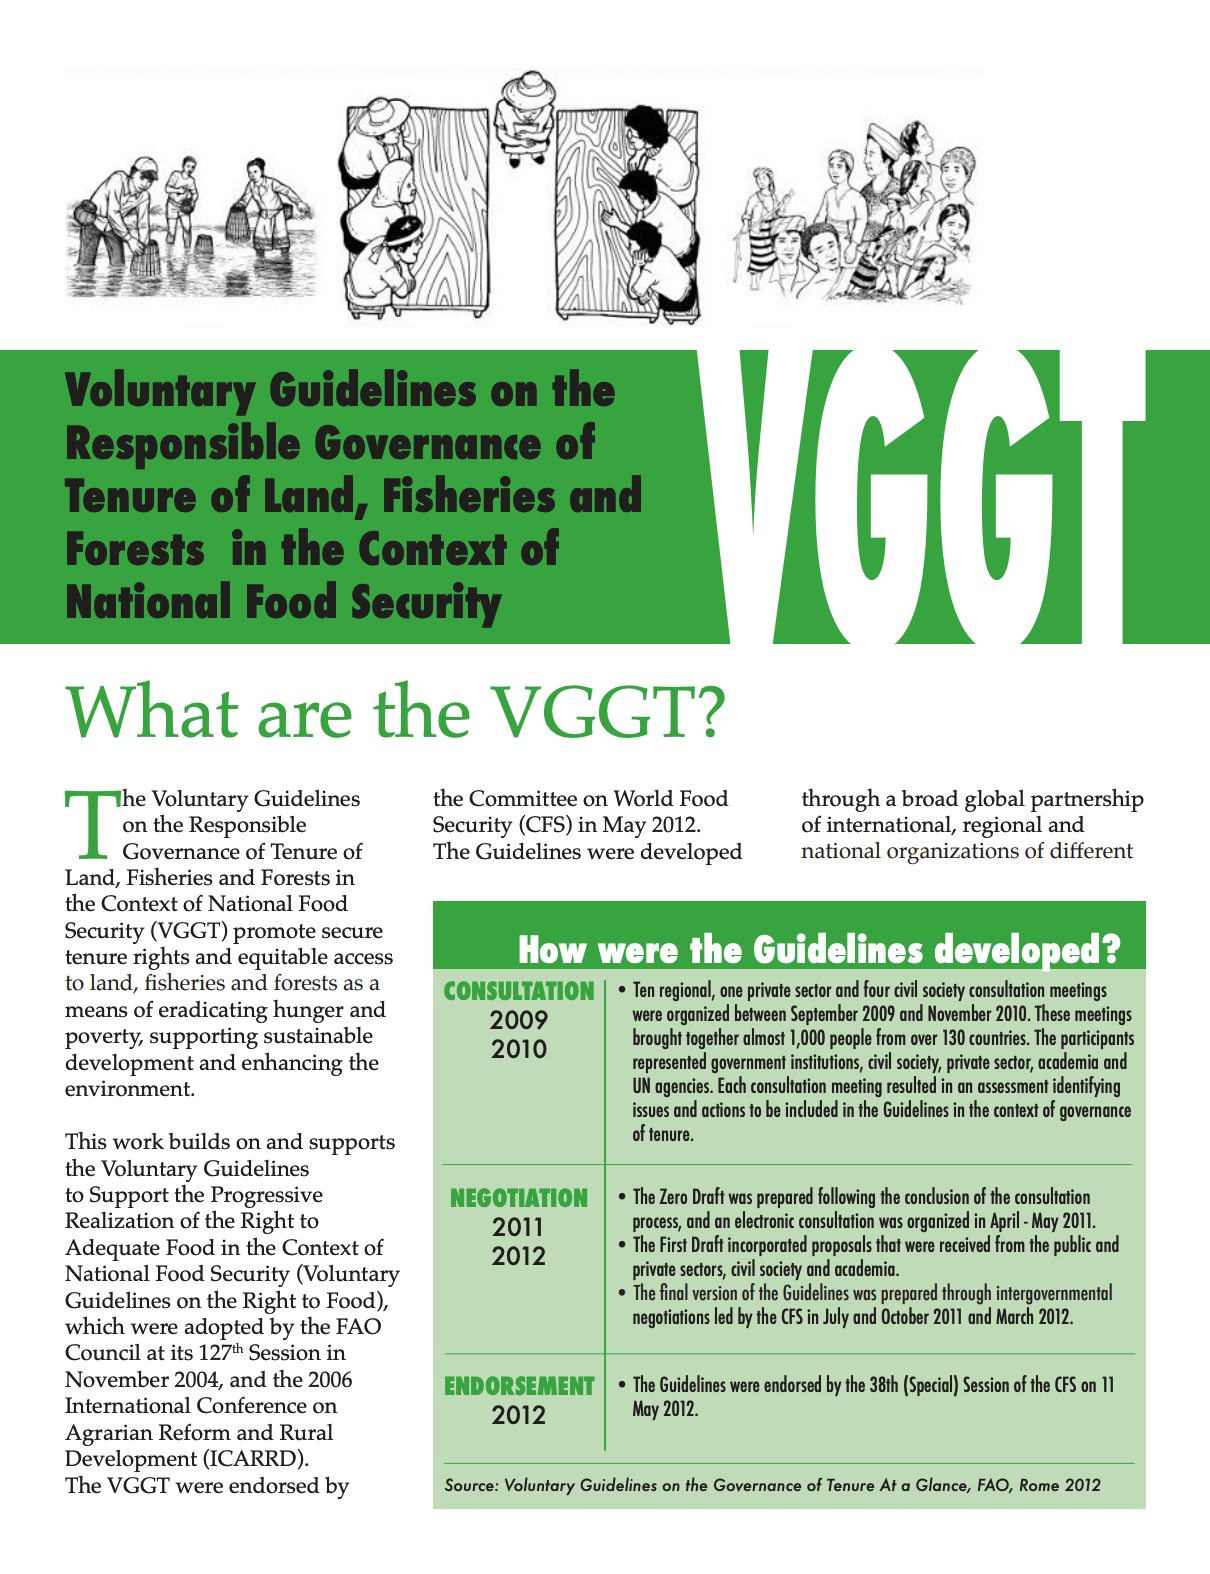 ANGOC: Voluntary Guidelines on the Responsible Governance of Tenure of Land, Fisheries and Forests in the Context of National Food Security cover image